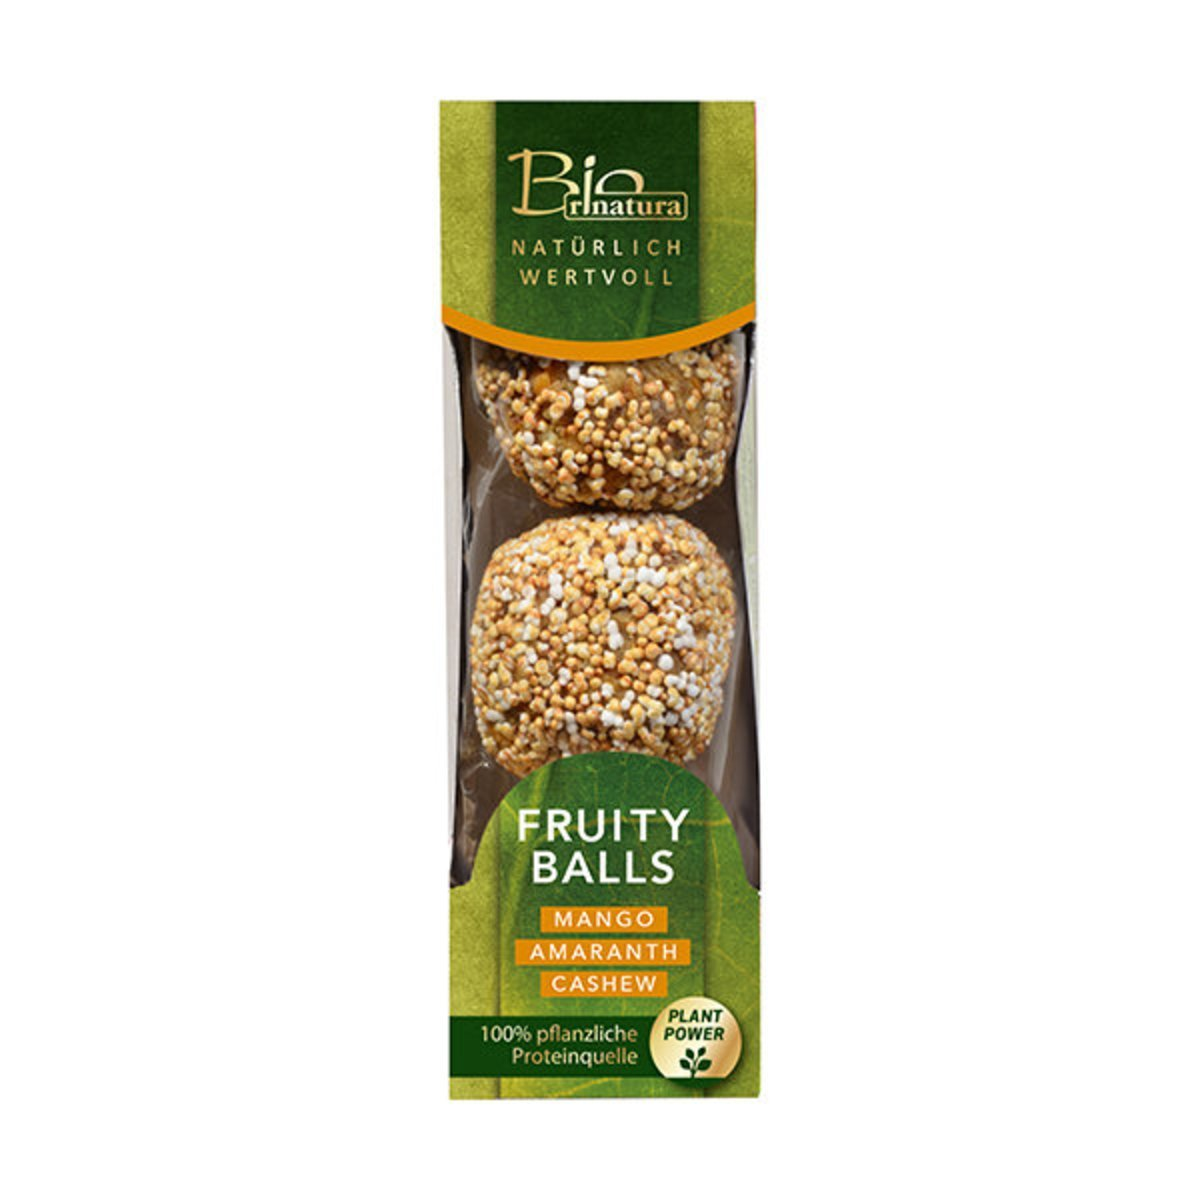 Rinatura Organic Fruity Balls (Mango, Amaranth and Cashew) 60G